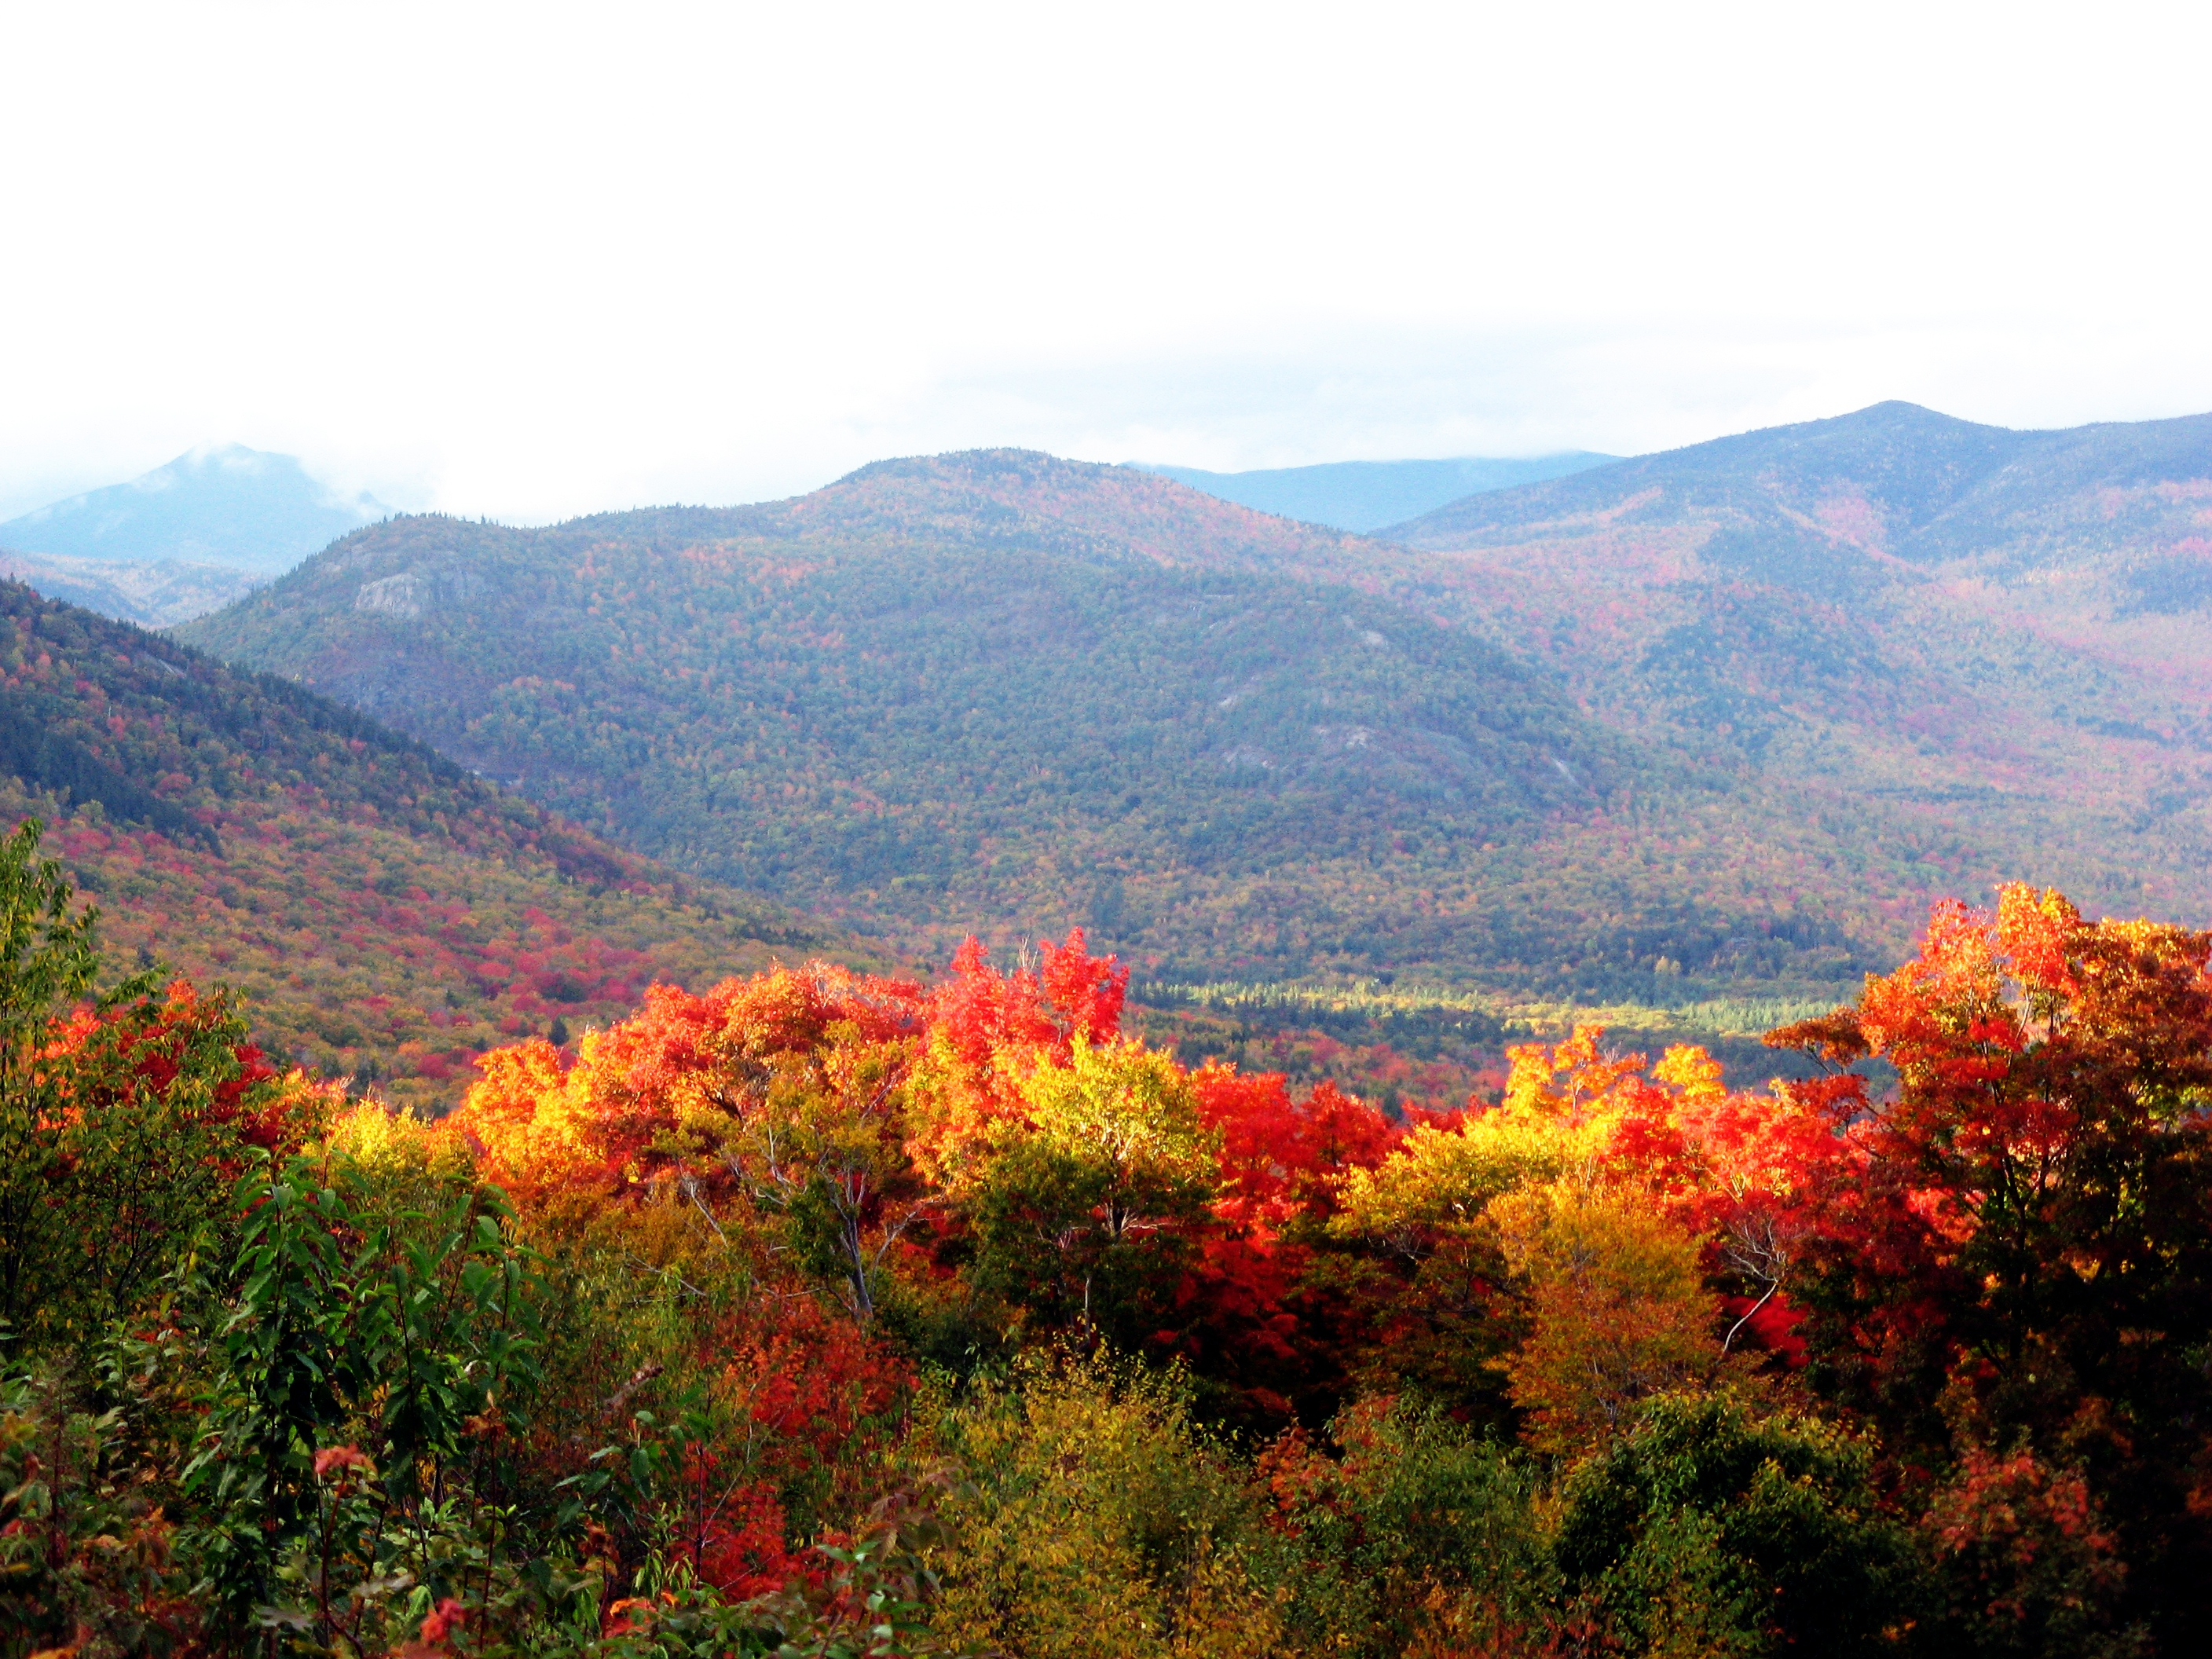 During autumn, the leaves on many hardwood trees in New Hampshire turn colors, attracting many tourists. Photo taken on August 9, 2009.